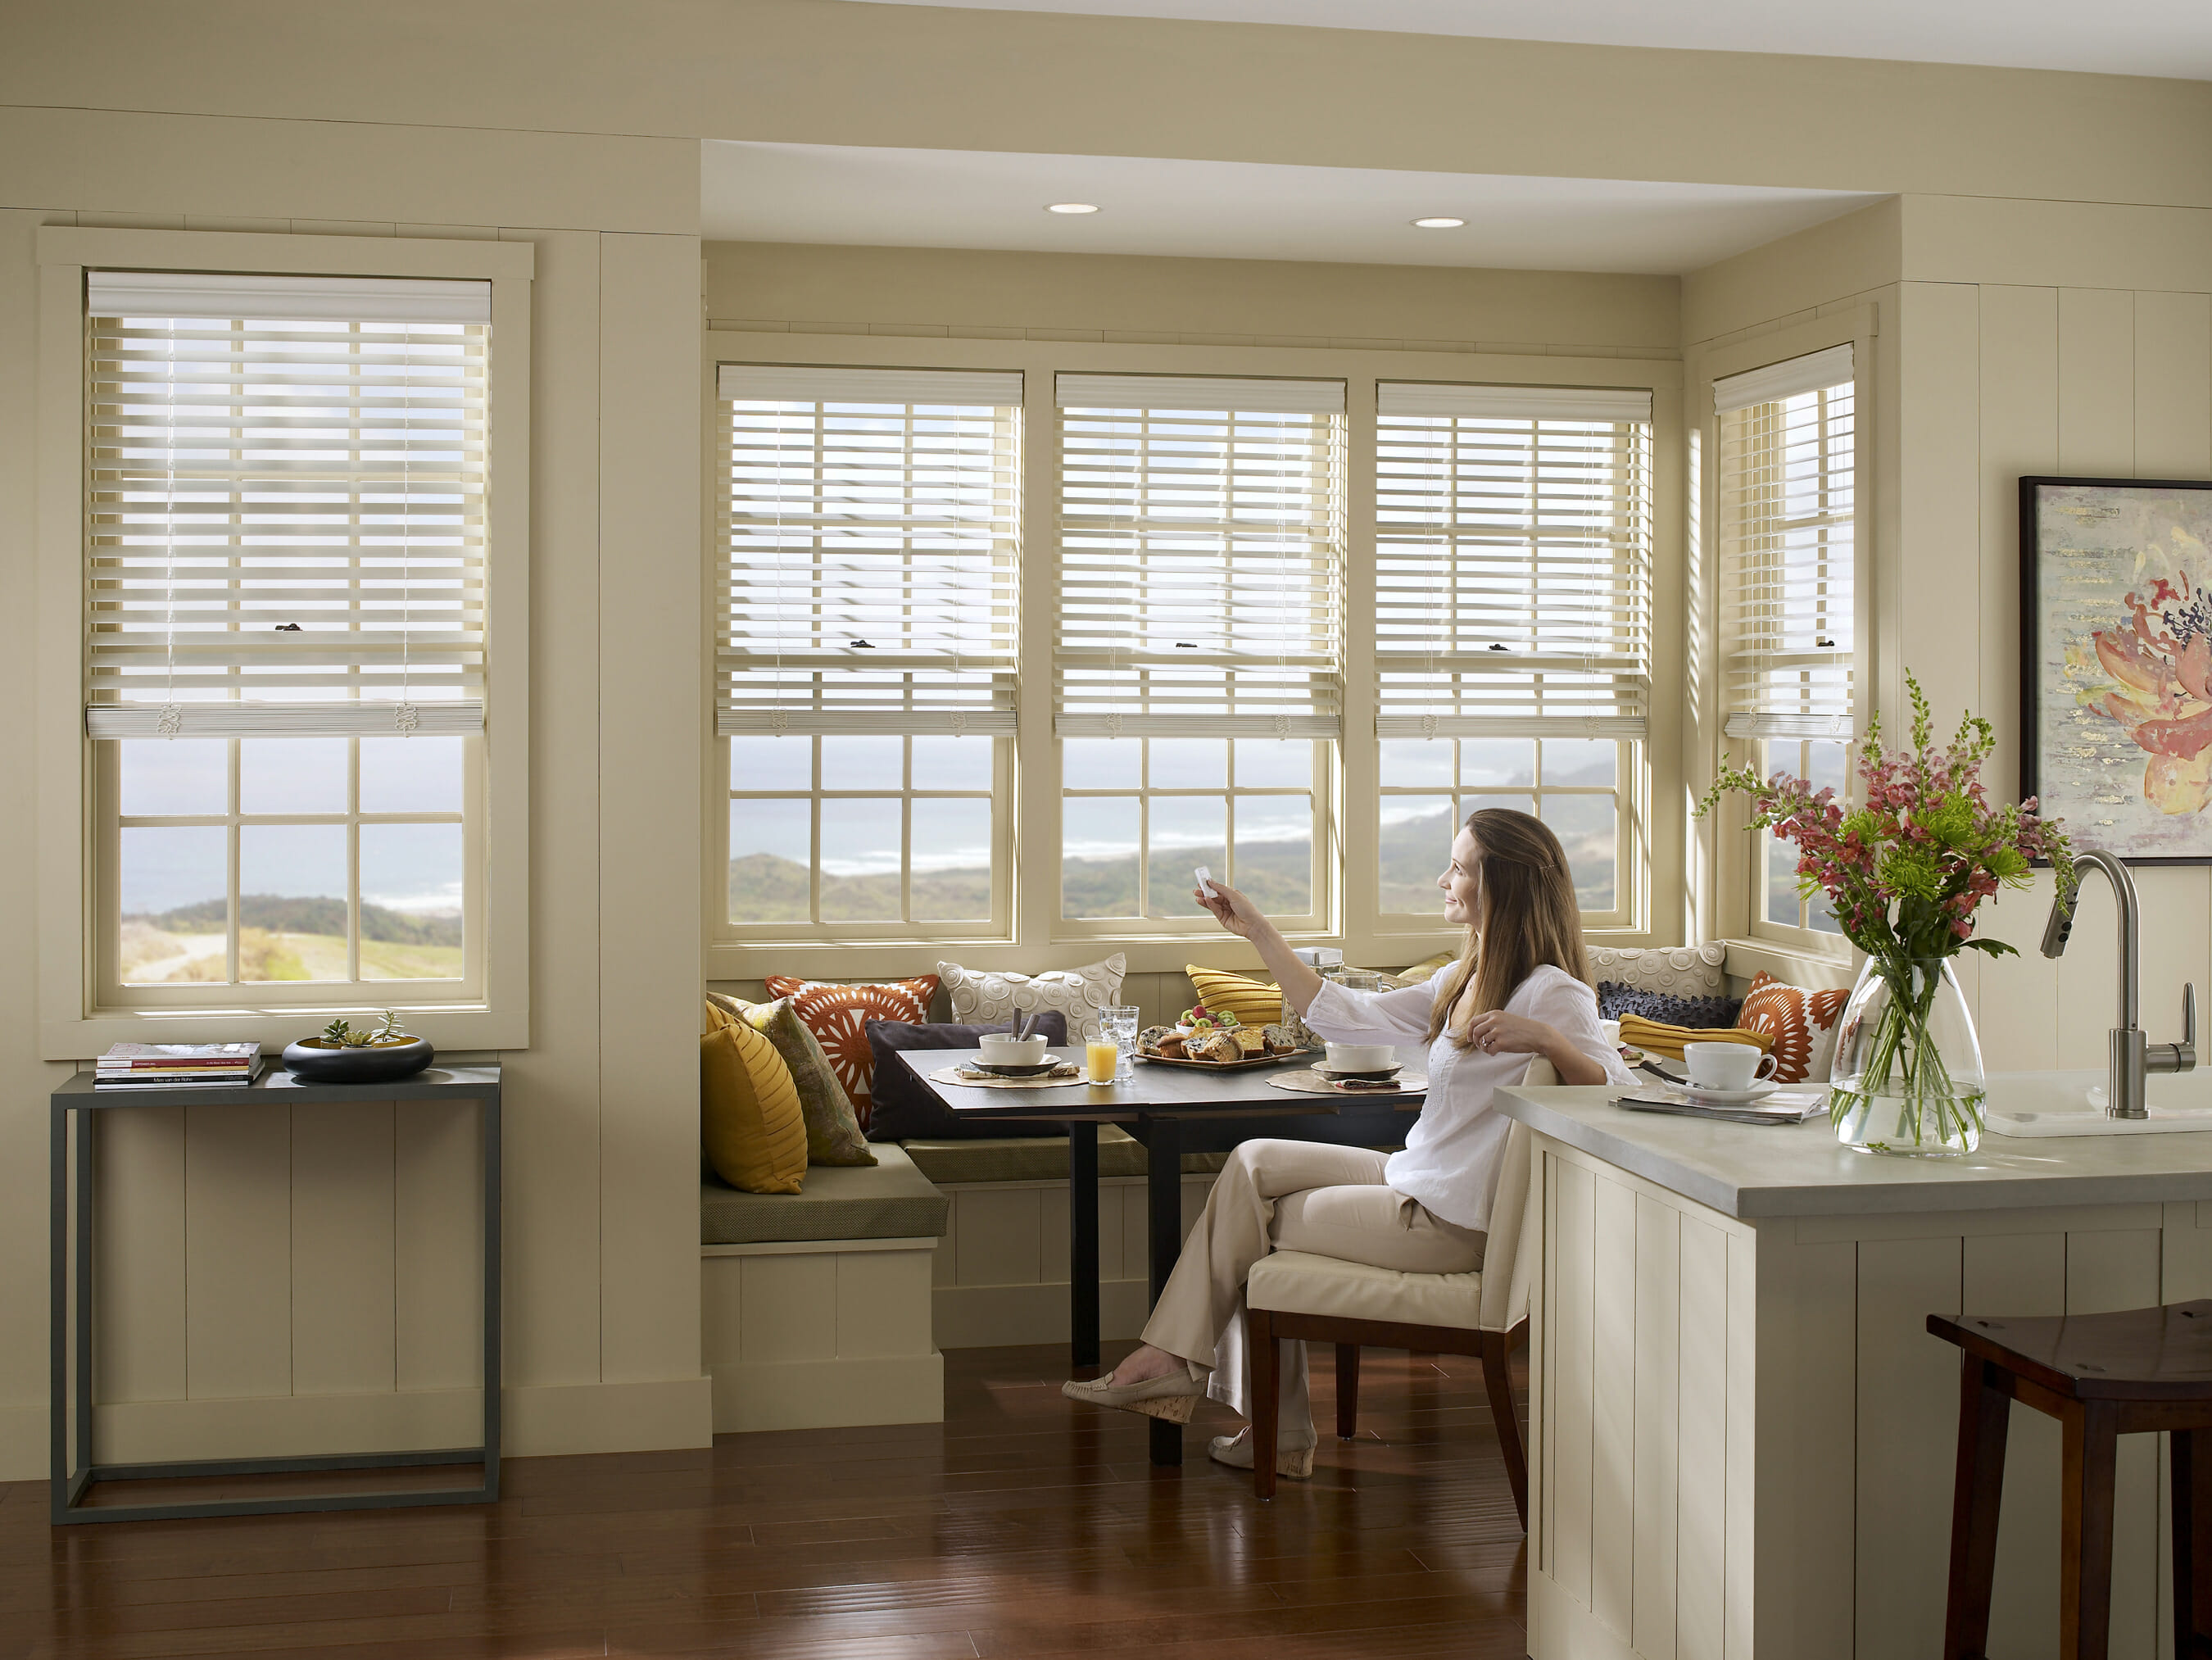 Types Of Window Blinds Aluminum Blinds 3 Blind Mice Window Coverings